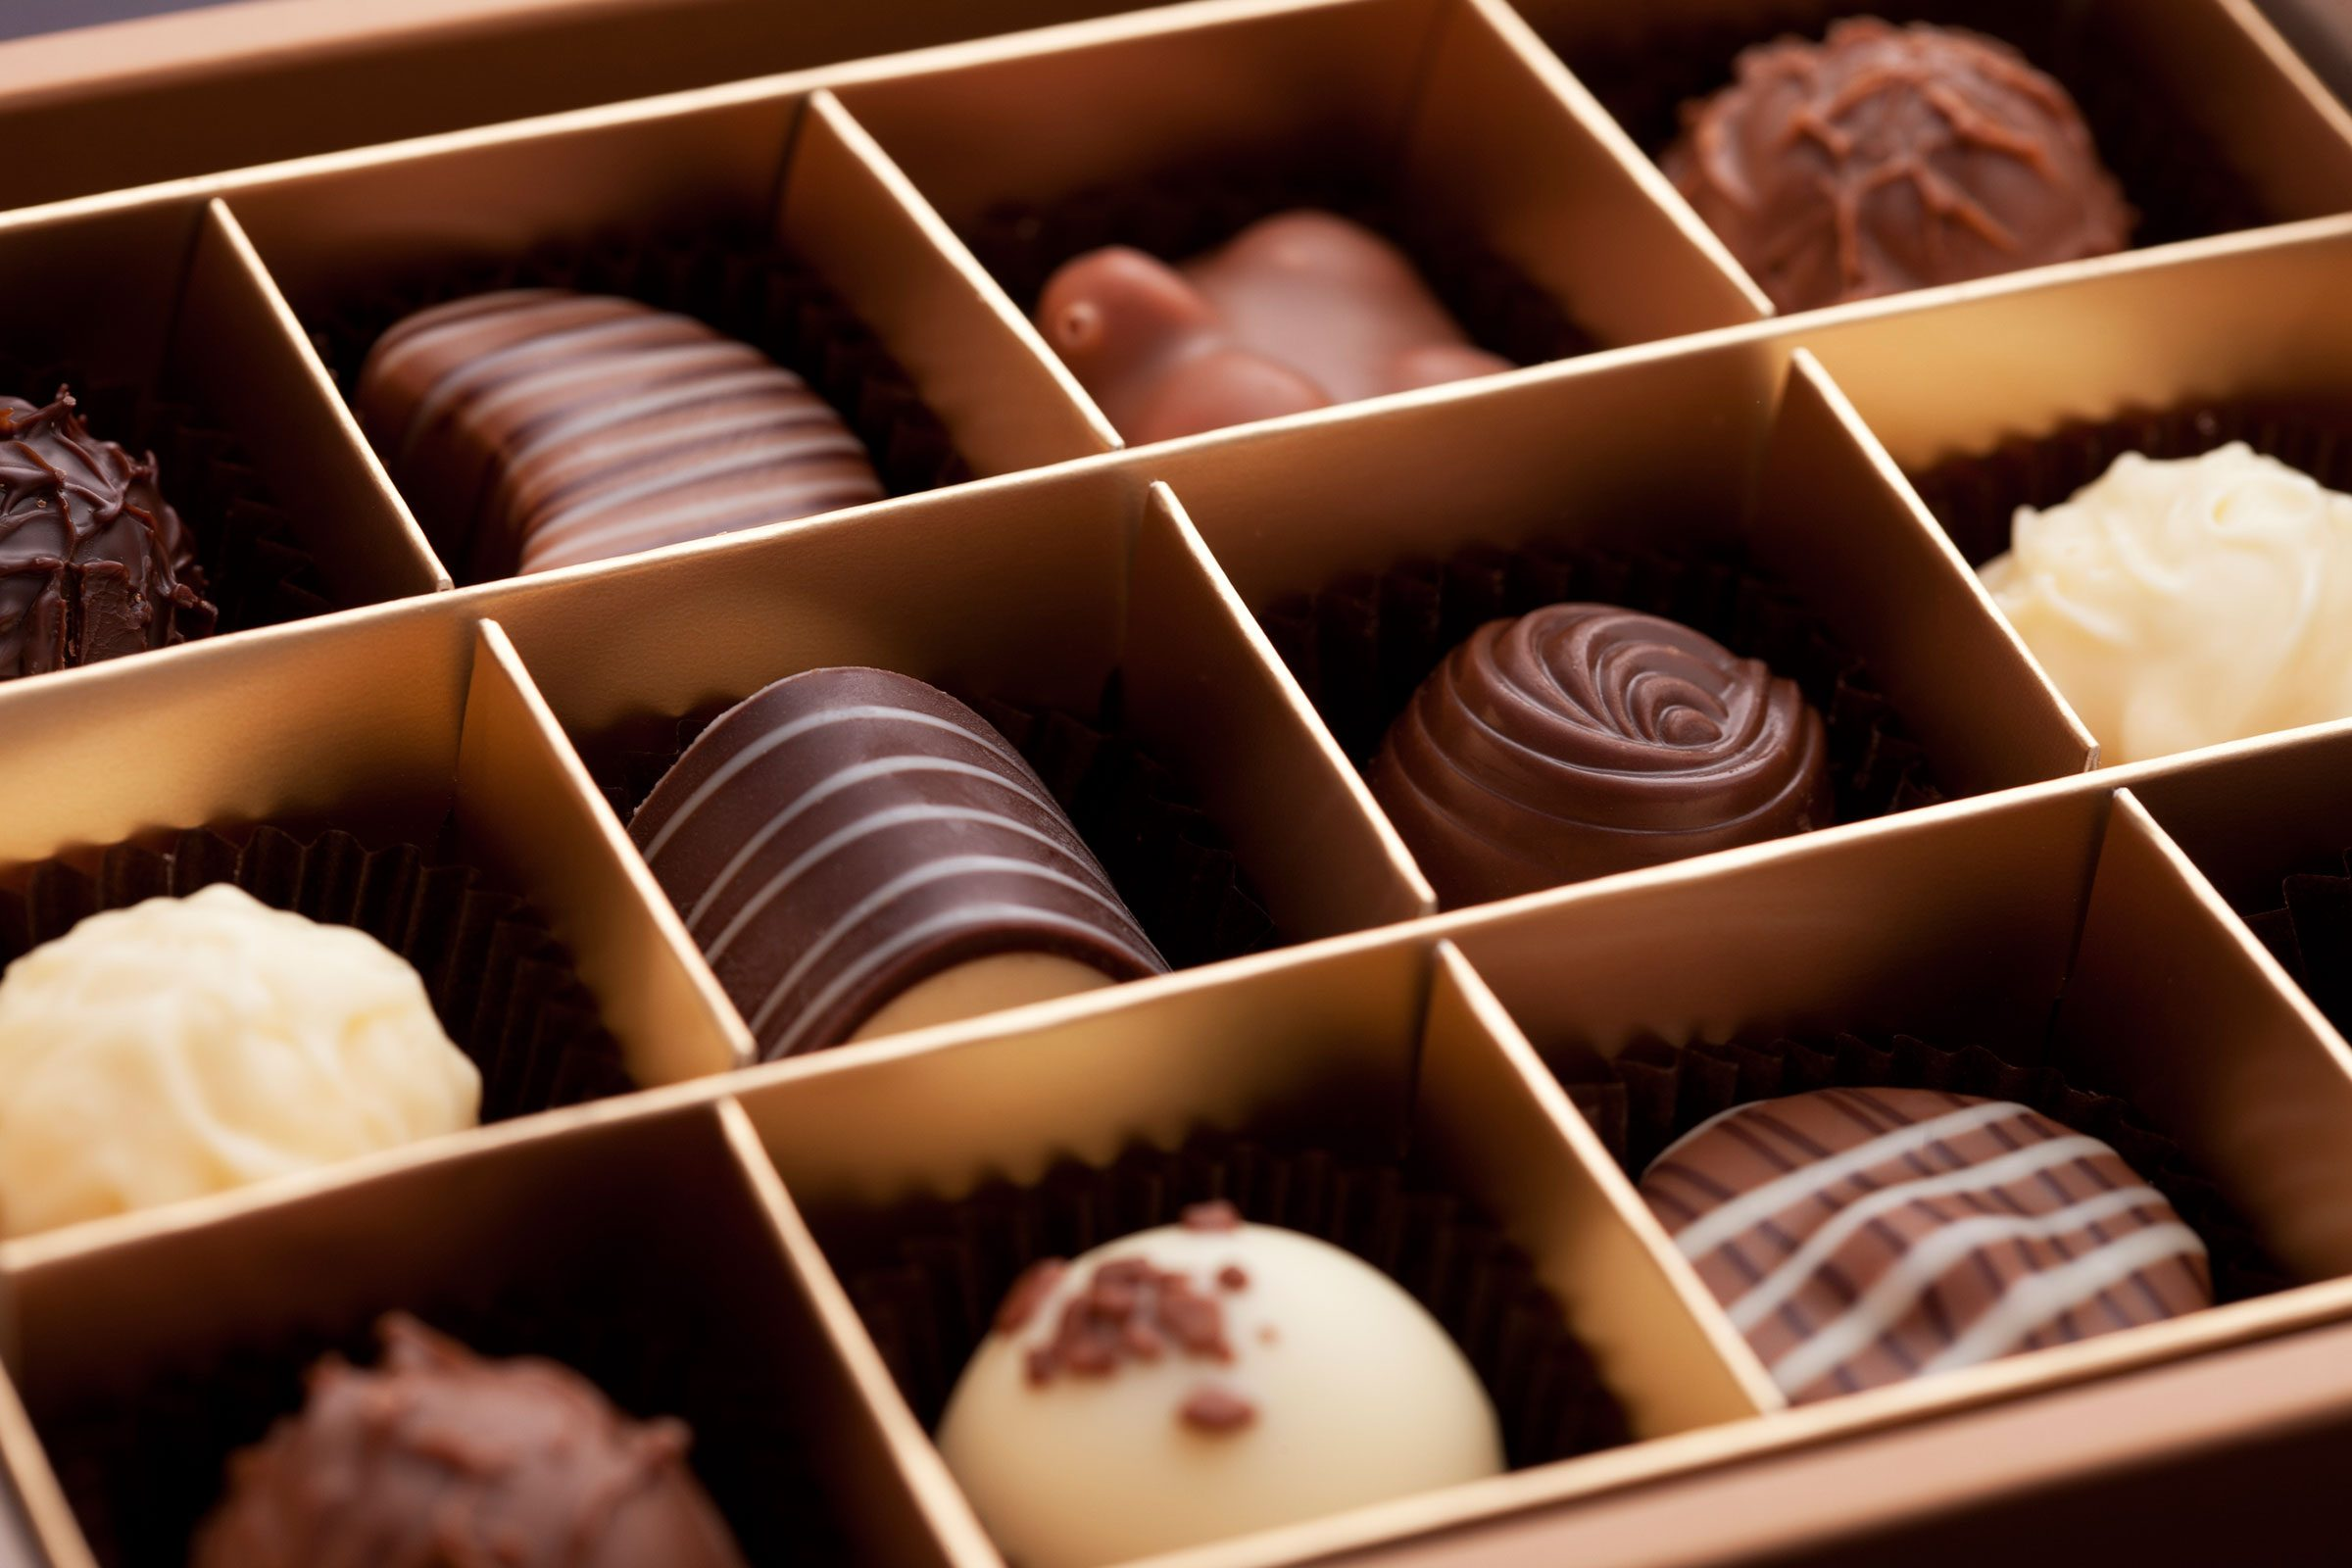 Myth: Oysters and chocolate are turn-ons